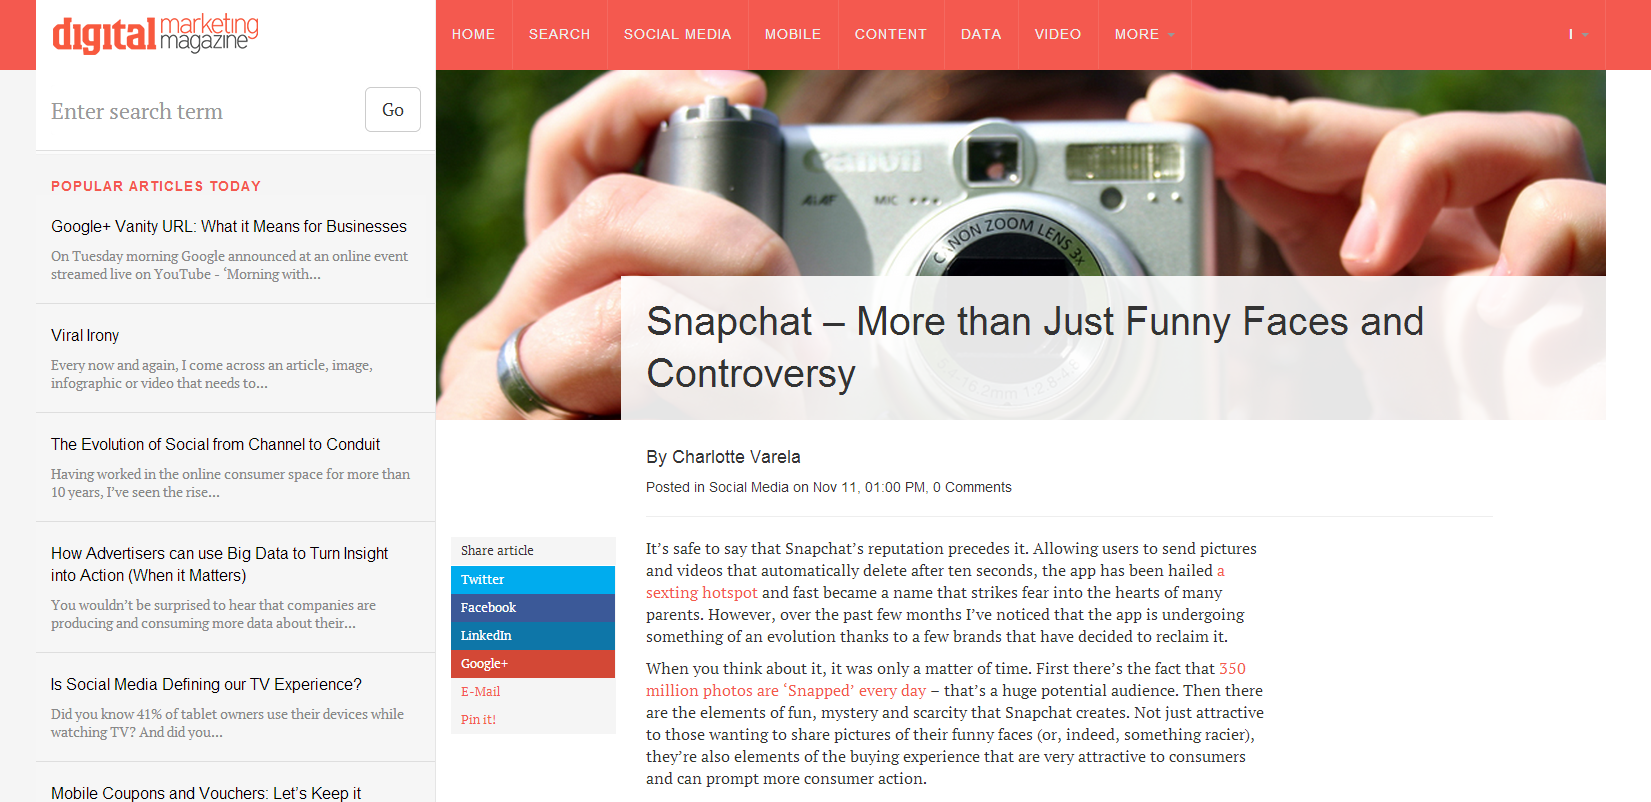 #Snapchat – More than Just Funny Faces and Controversy, as seen on Digital Marketing Magazine. #socialmedia